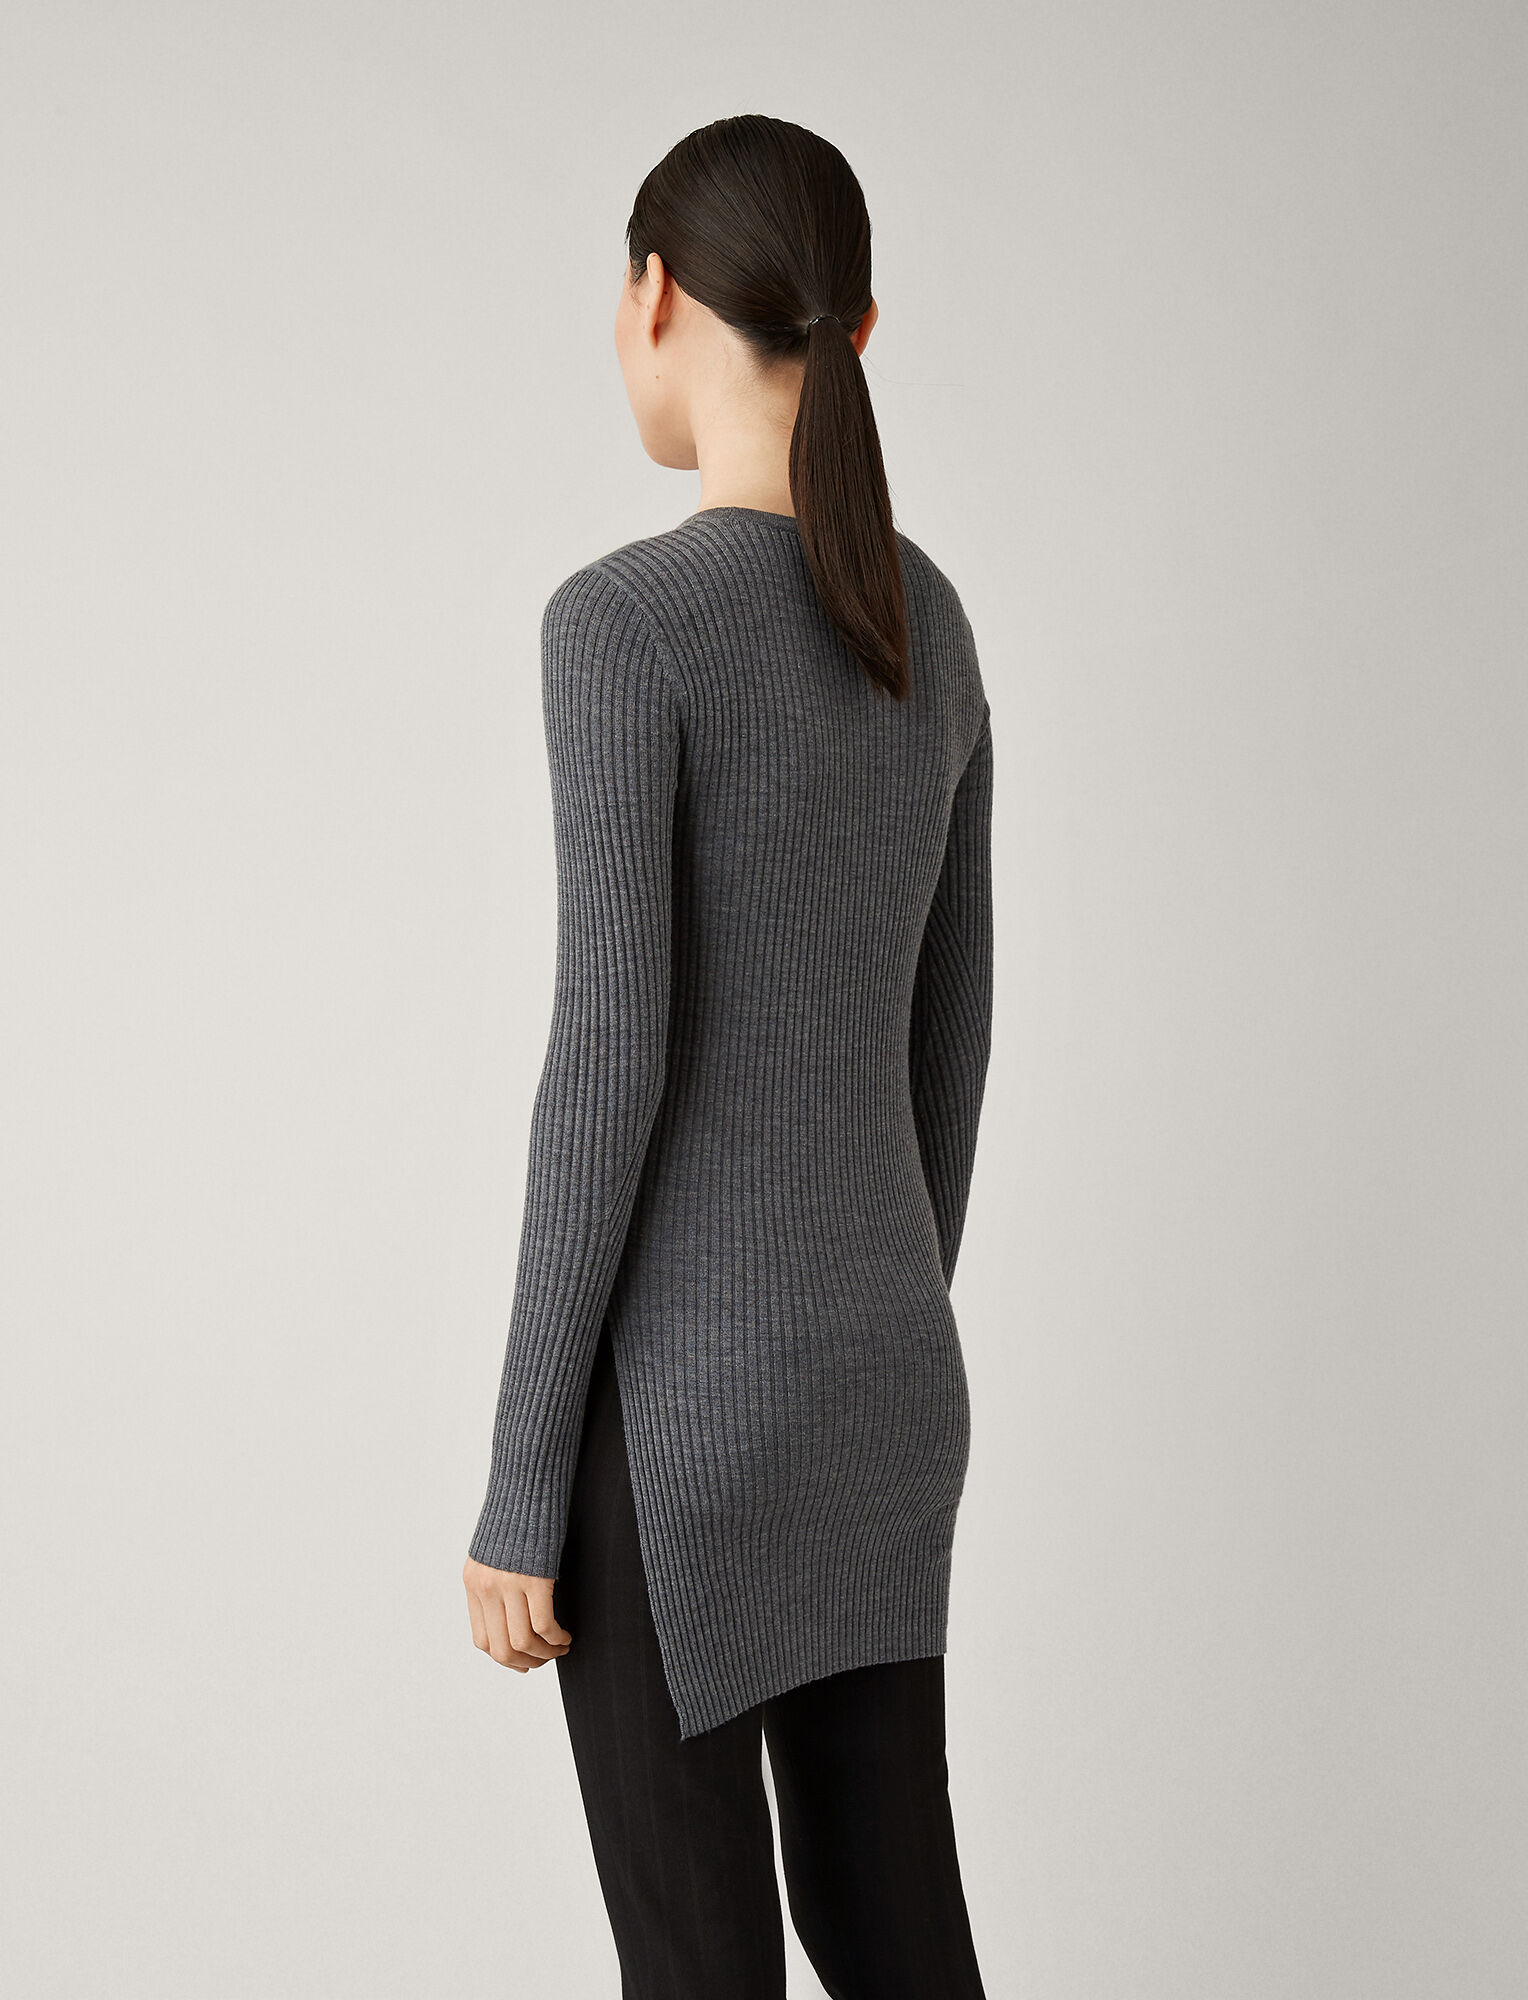 Joseph, Tunic Light Merinos Rib Knit, in CHARCOAL